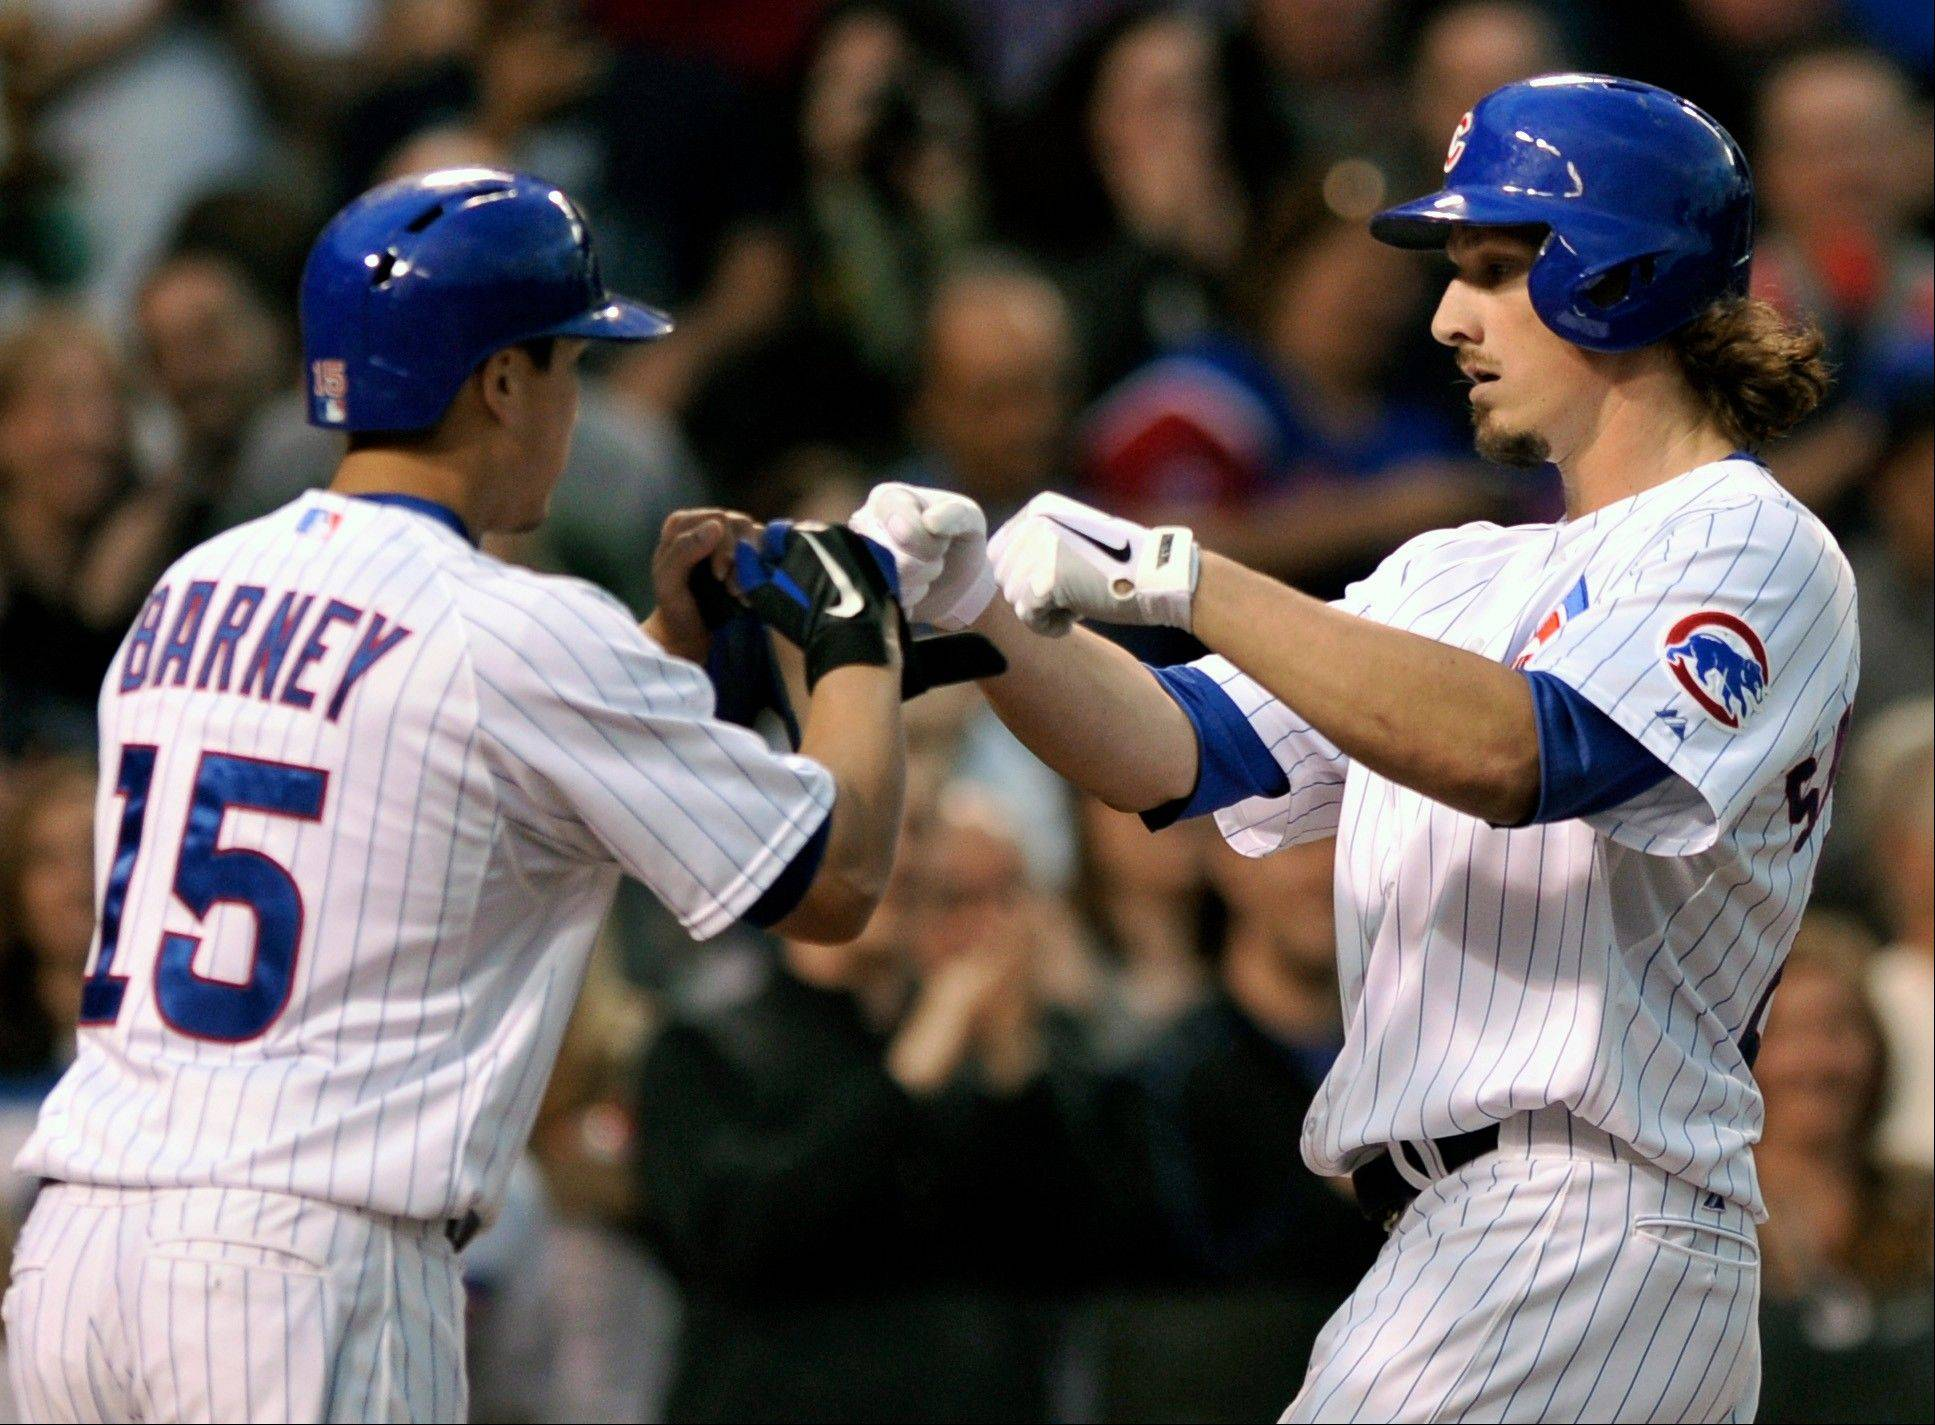 Chicago Cubs' Jeff Samardzija, right, celebrates with teammate Darwin Barney at home plate after hitting a two-run home run Wednesday at Wrigley Field. The Cubs beat the Colorado Rockies 6-3.